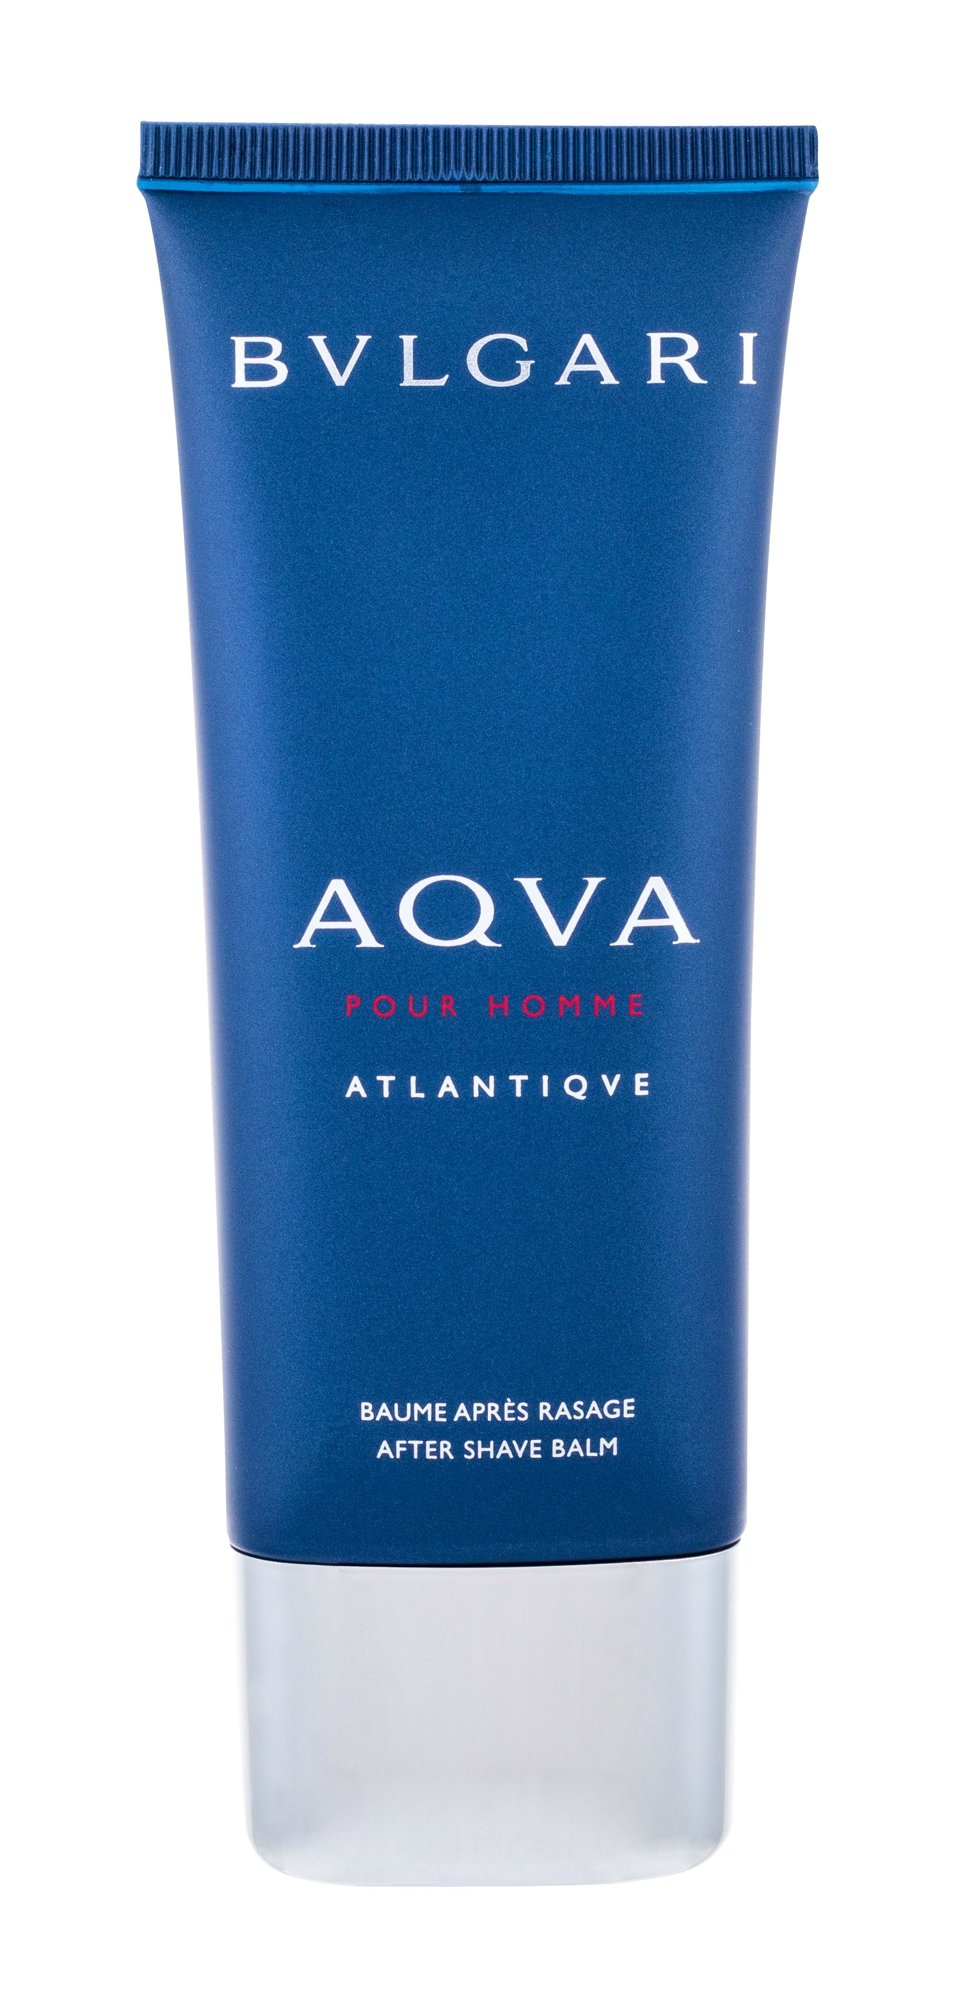 Bvlgari Aqva Pour Homme After shave balm 100ml